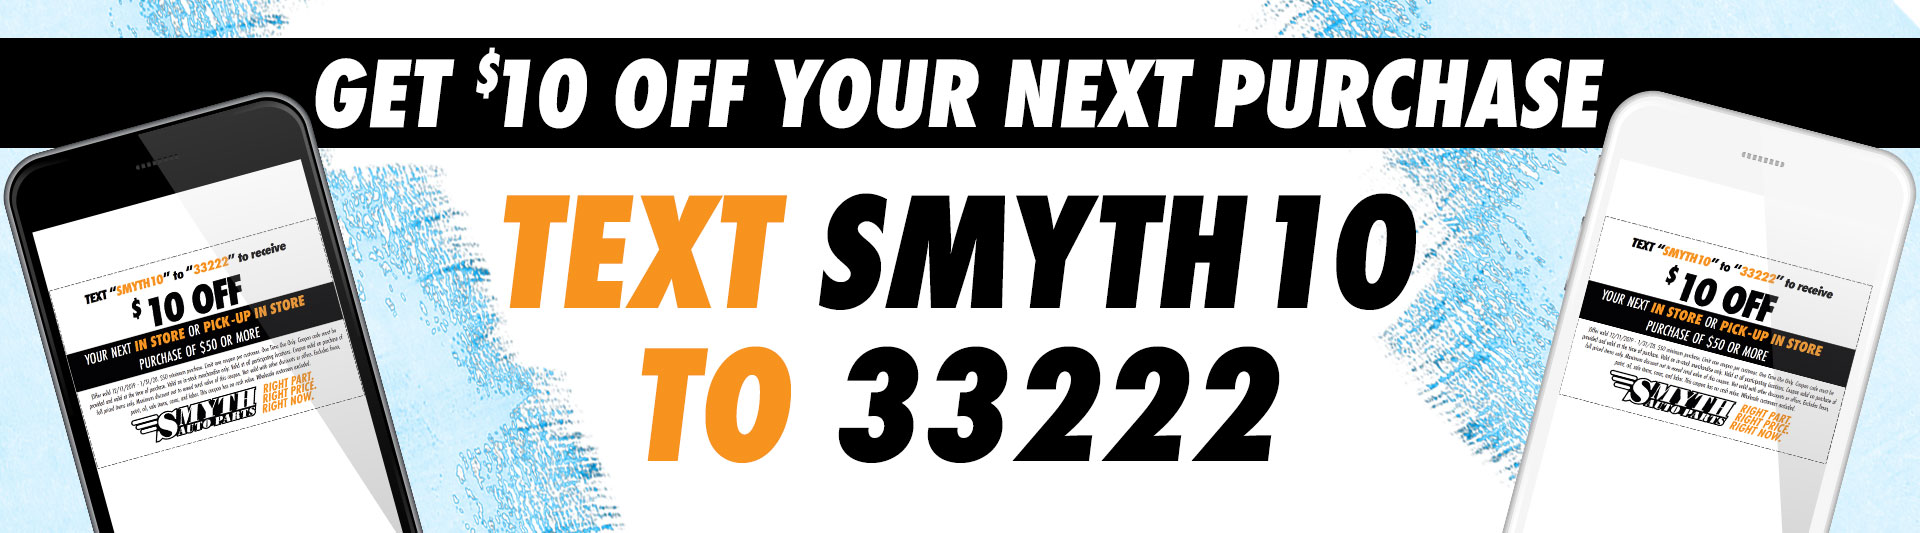 Text Smyth10 to 33-322 to get a 10 dollar coupon